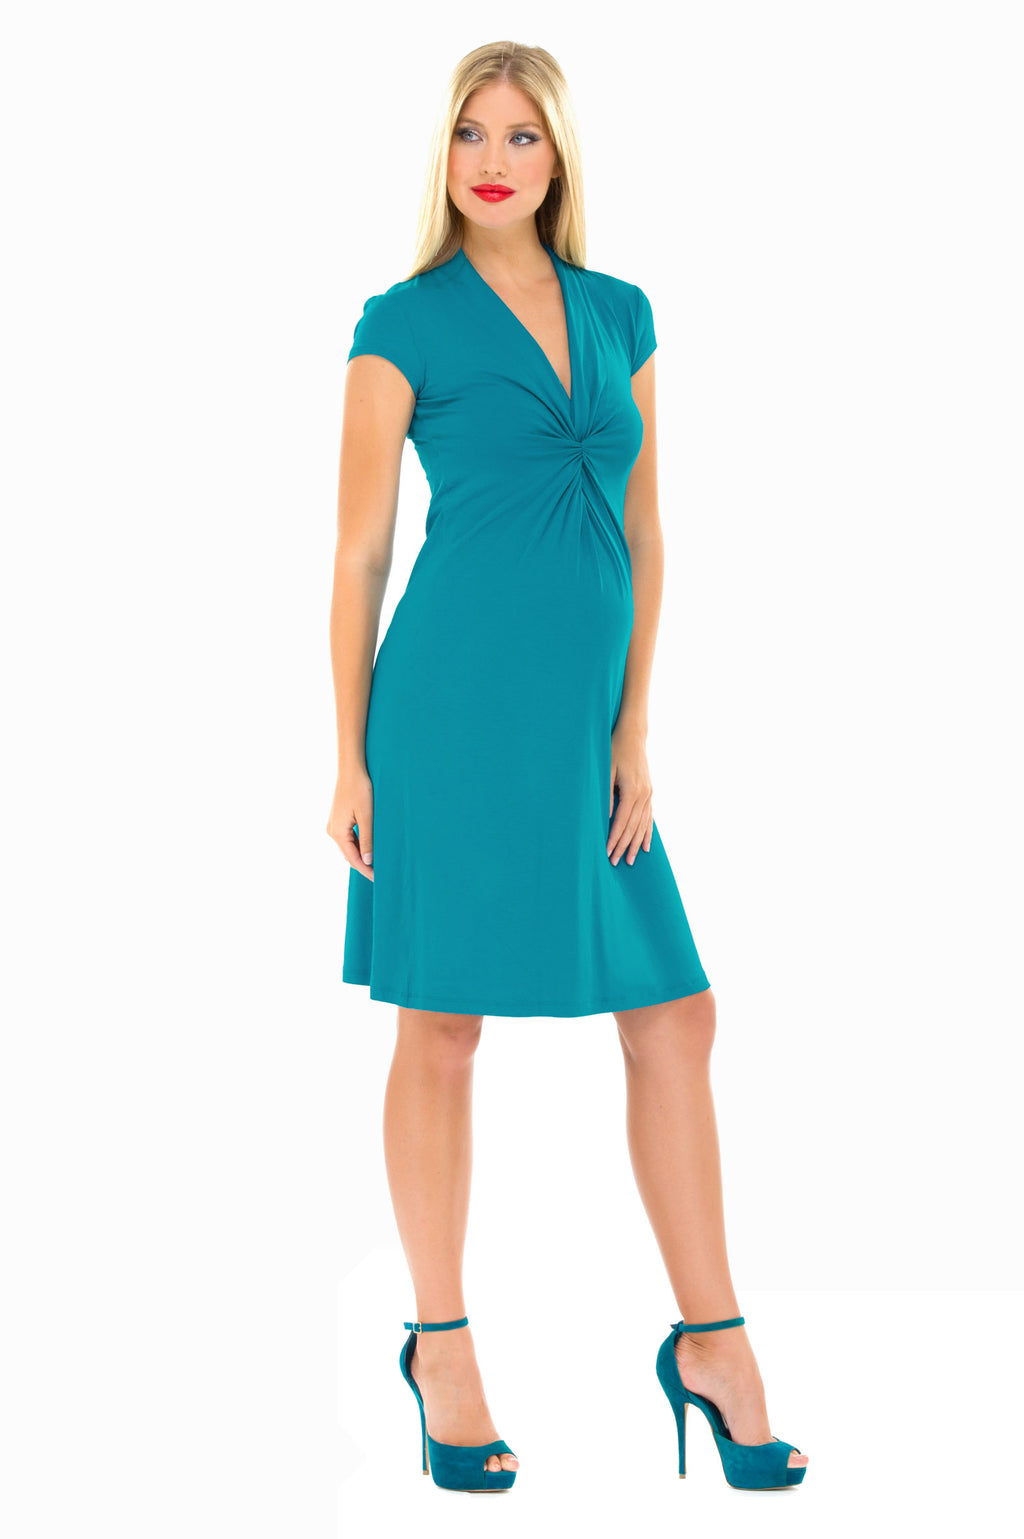 Olian Twisted V Neck, Cap Sleeve Maternity Dress - Seven Women Maternity